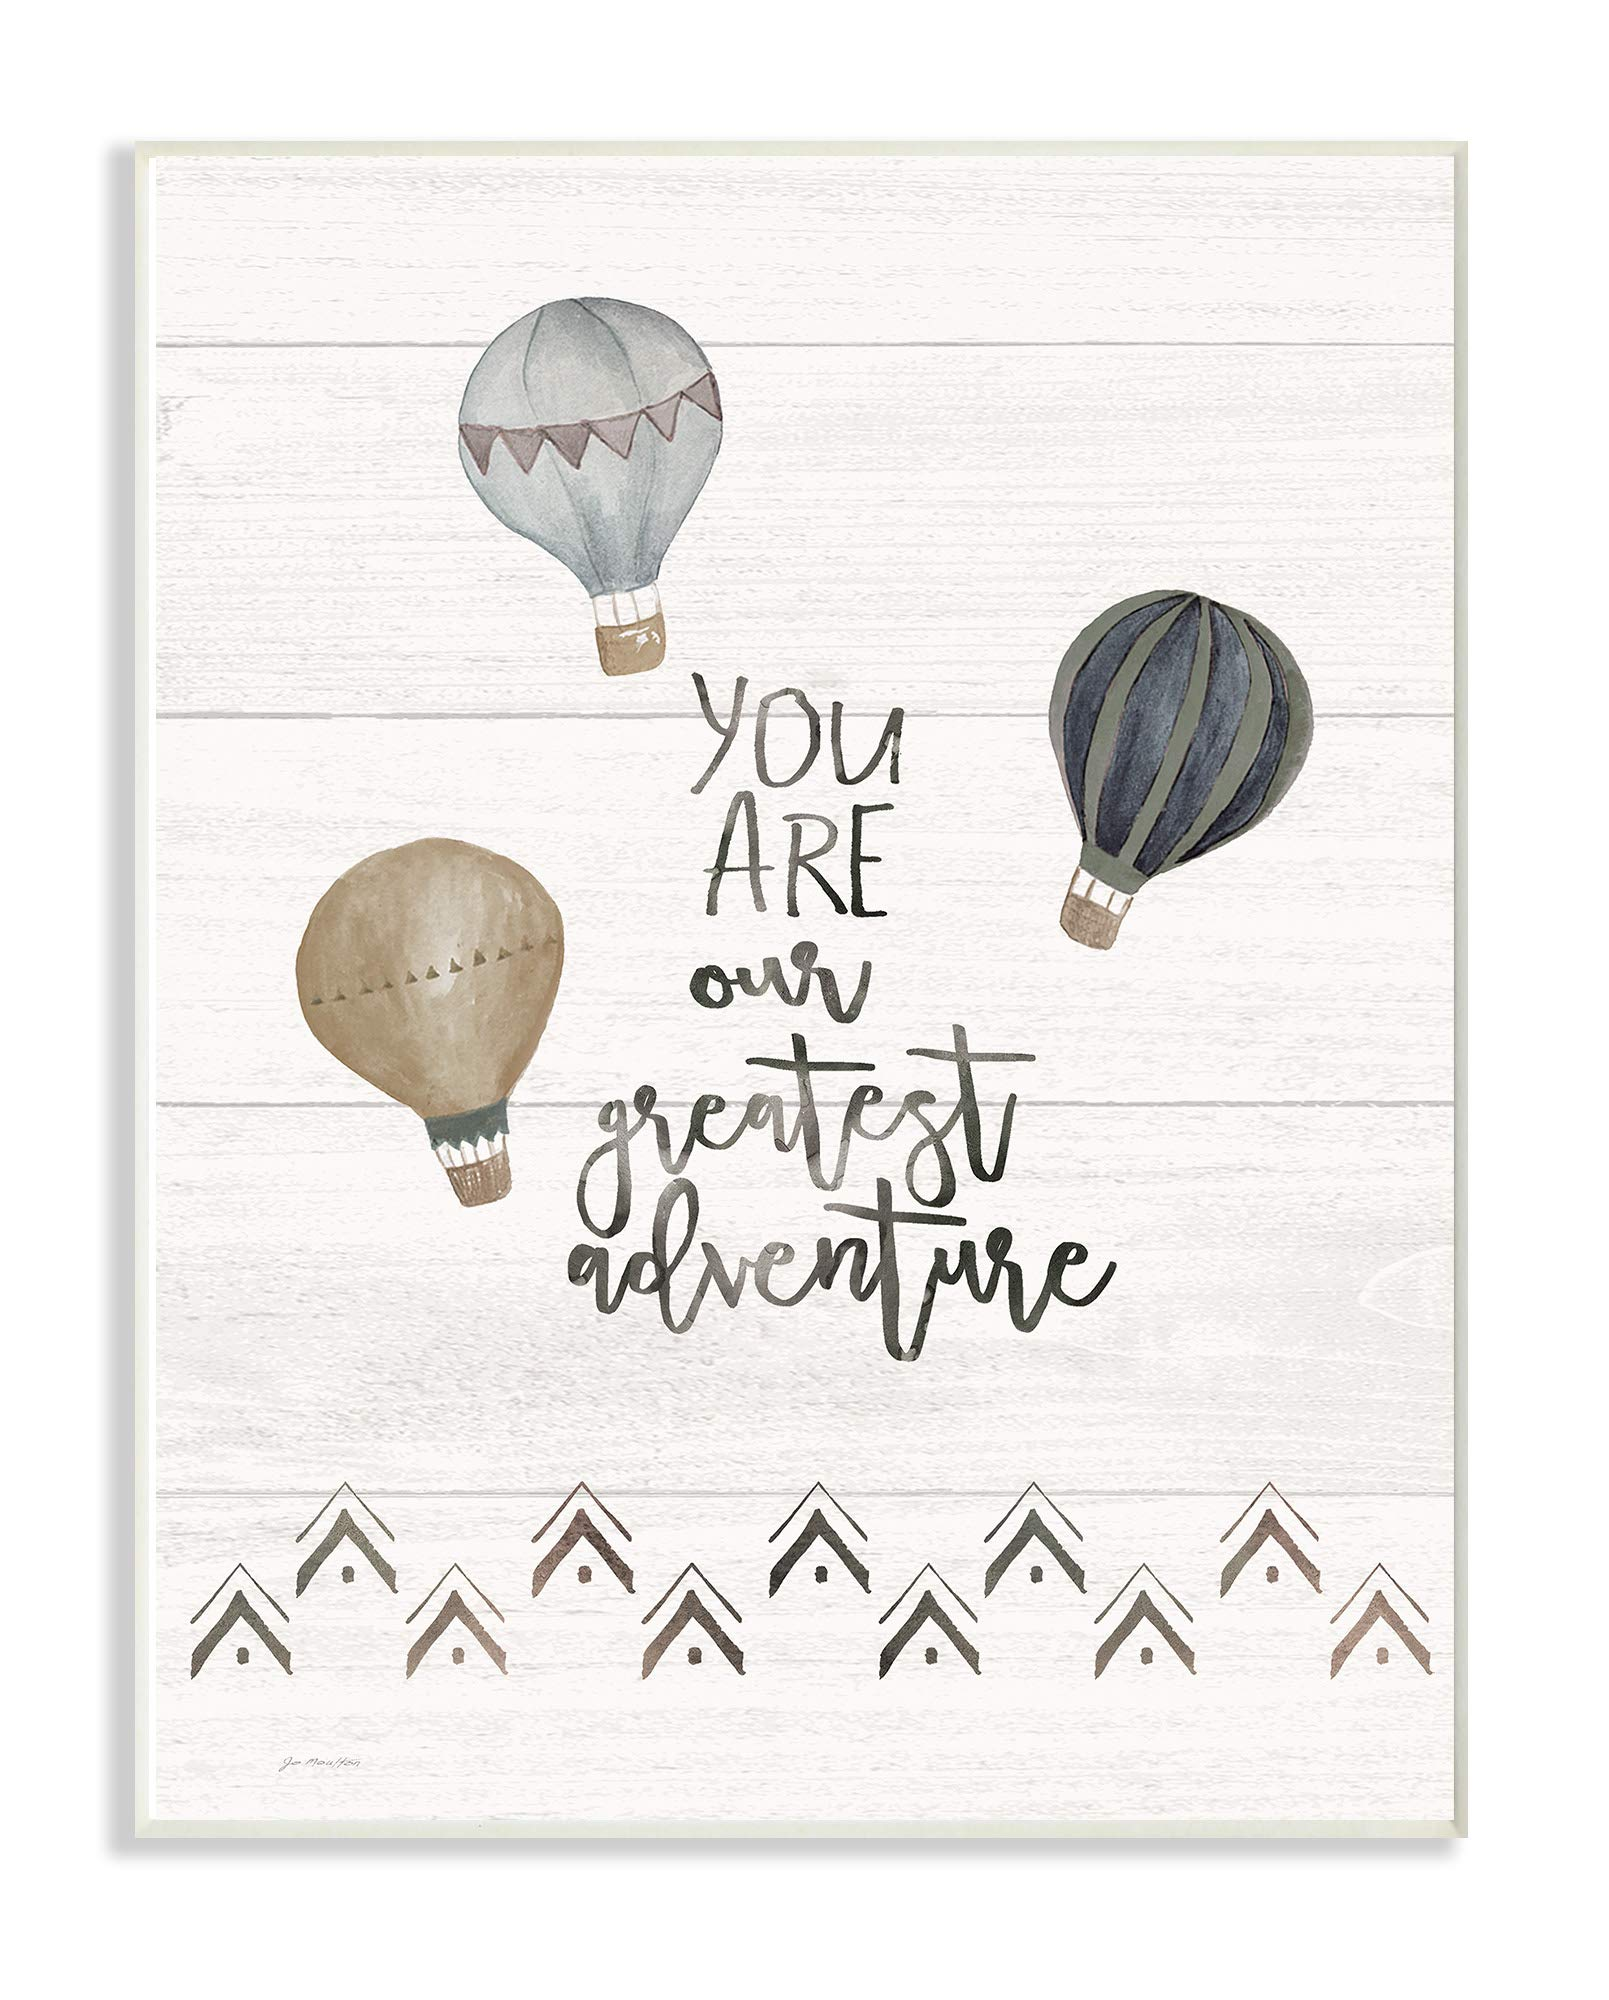 The Kids Room By Stupell Our Greatest Adventure Neutral Grey Hot Air Balloons Wall Plaque Art, 10 x 15, Proudly Made in USA, Multi-Color